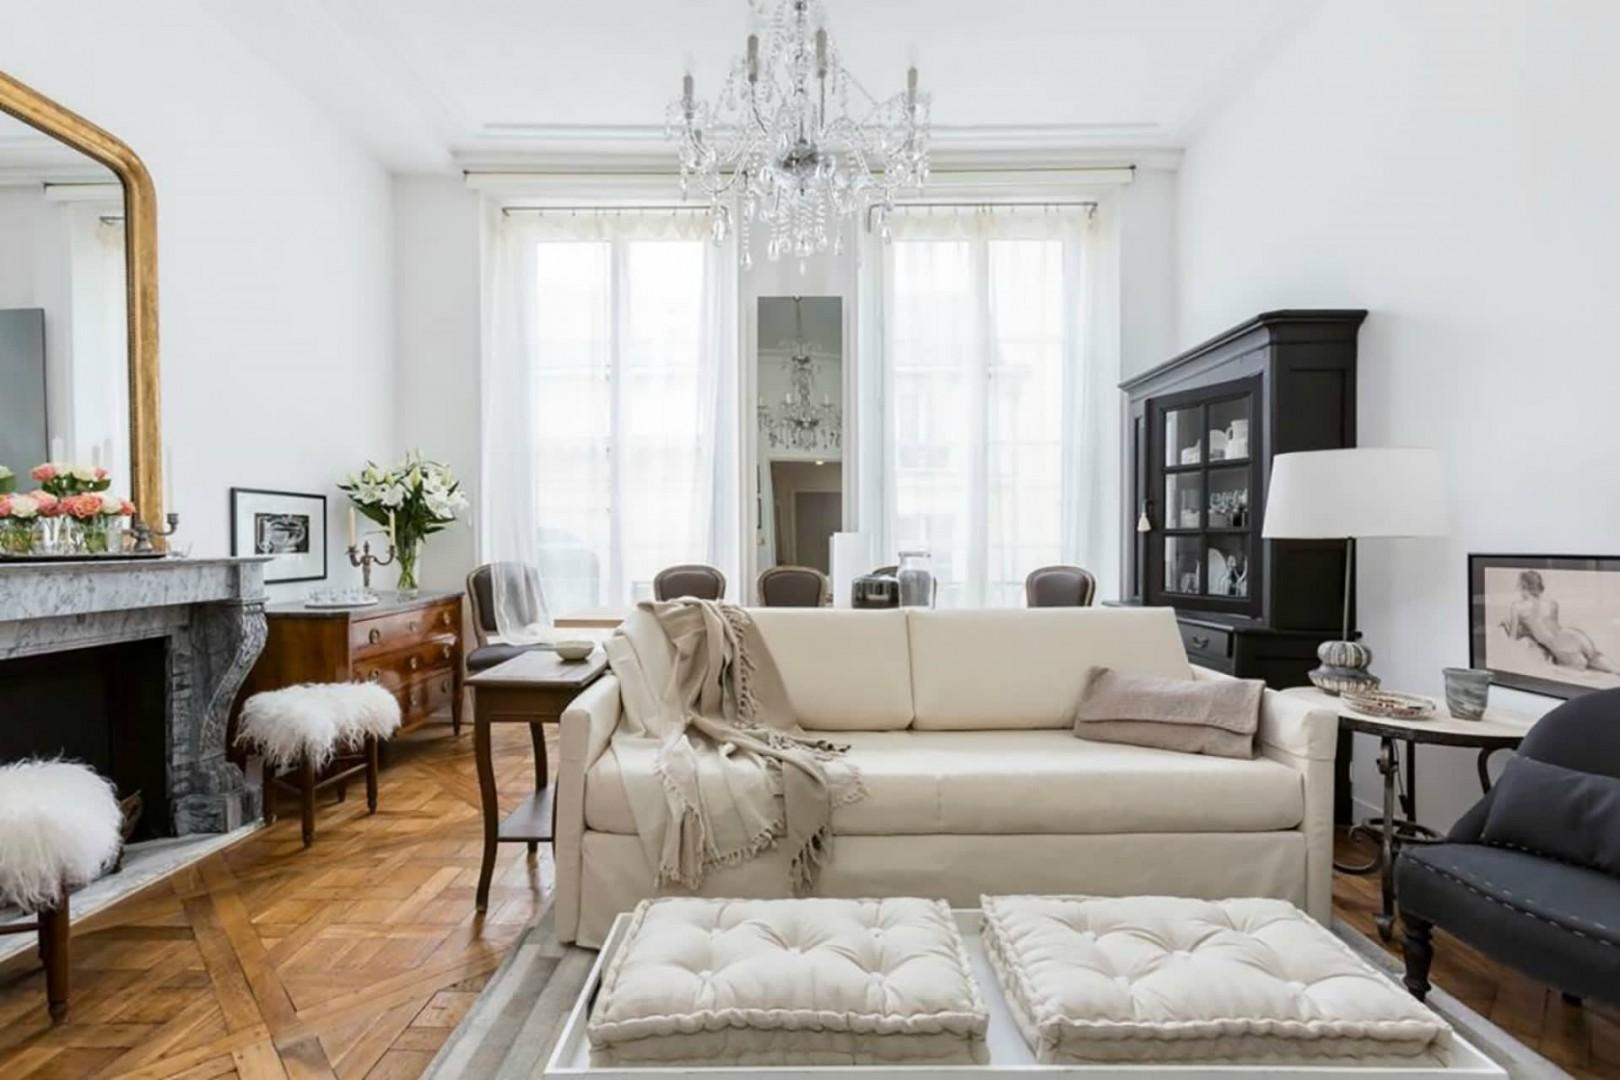 Welcome to the bright and stylish Prosecco vacation rental!